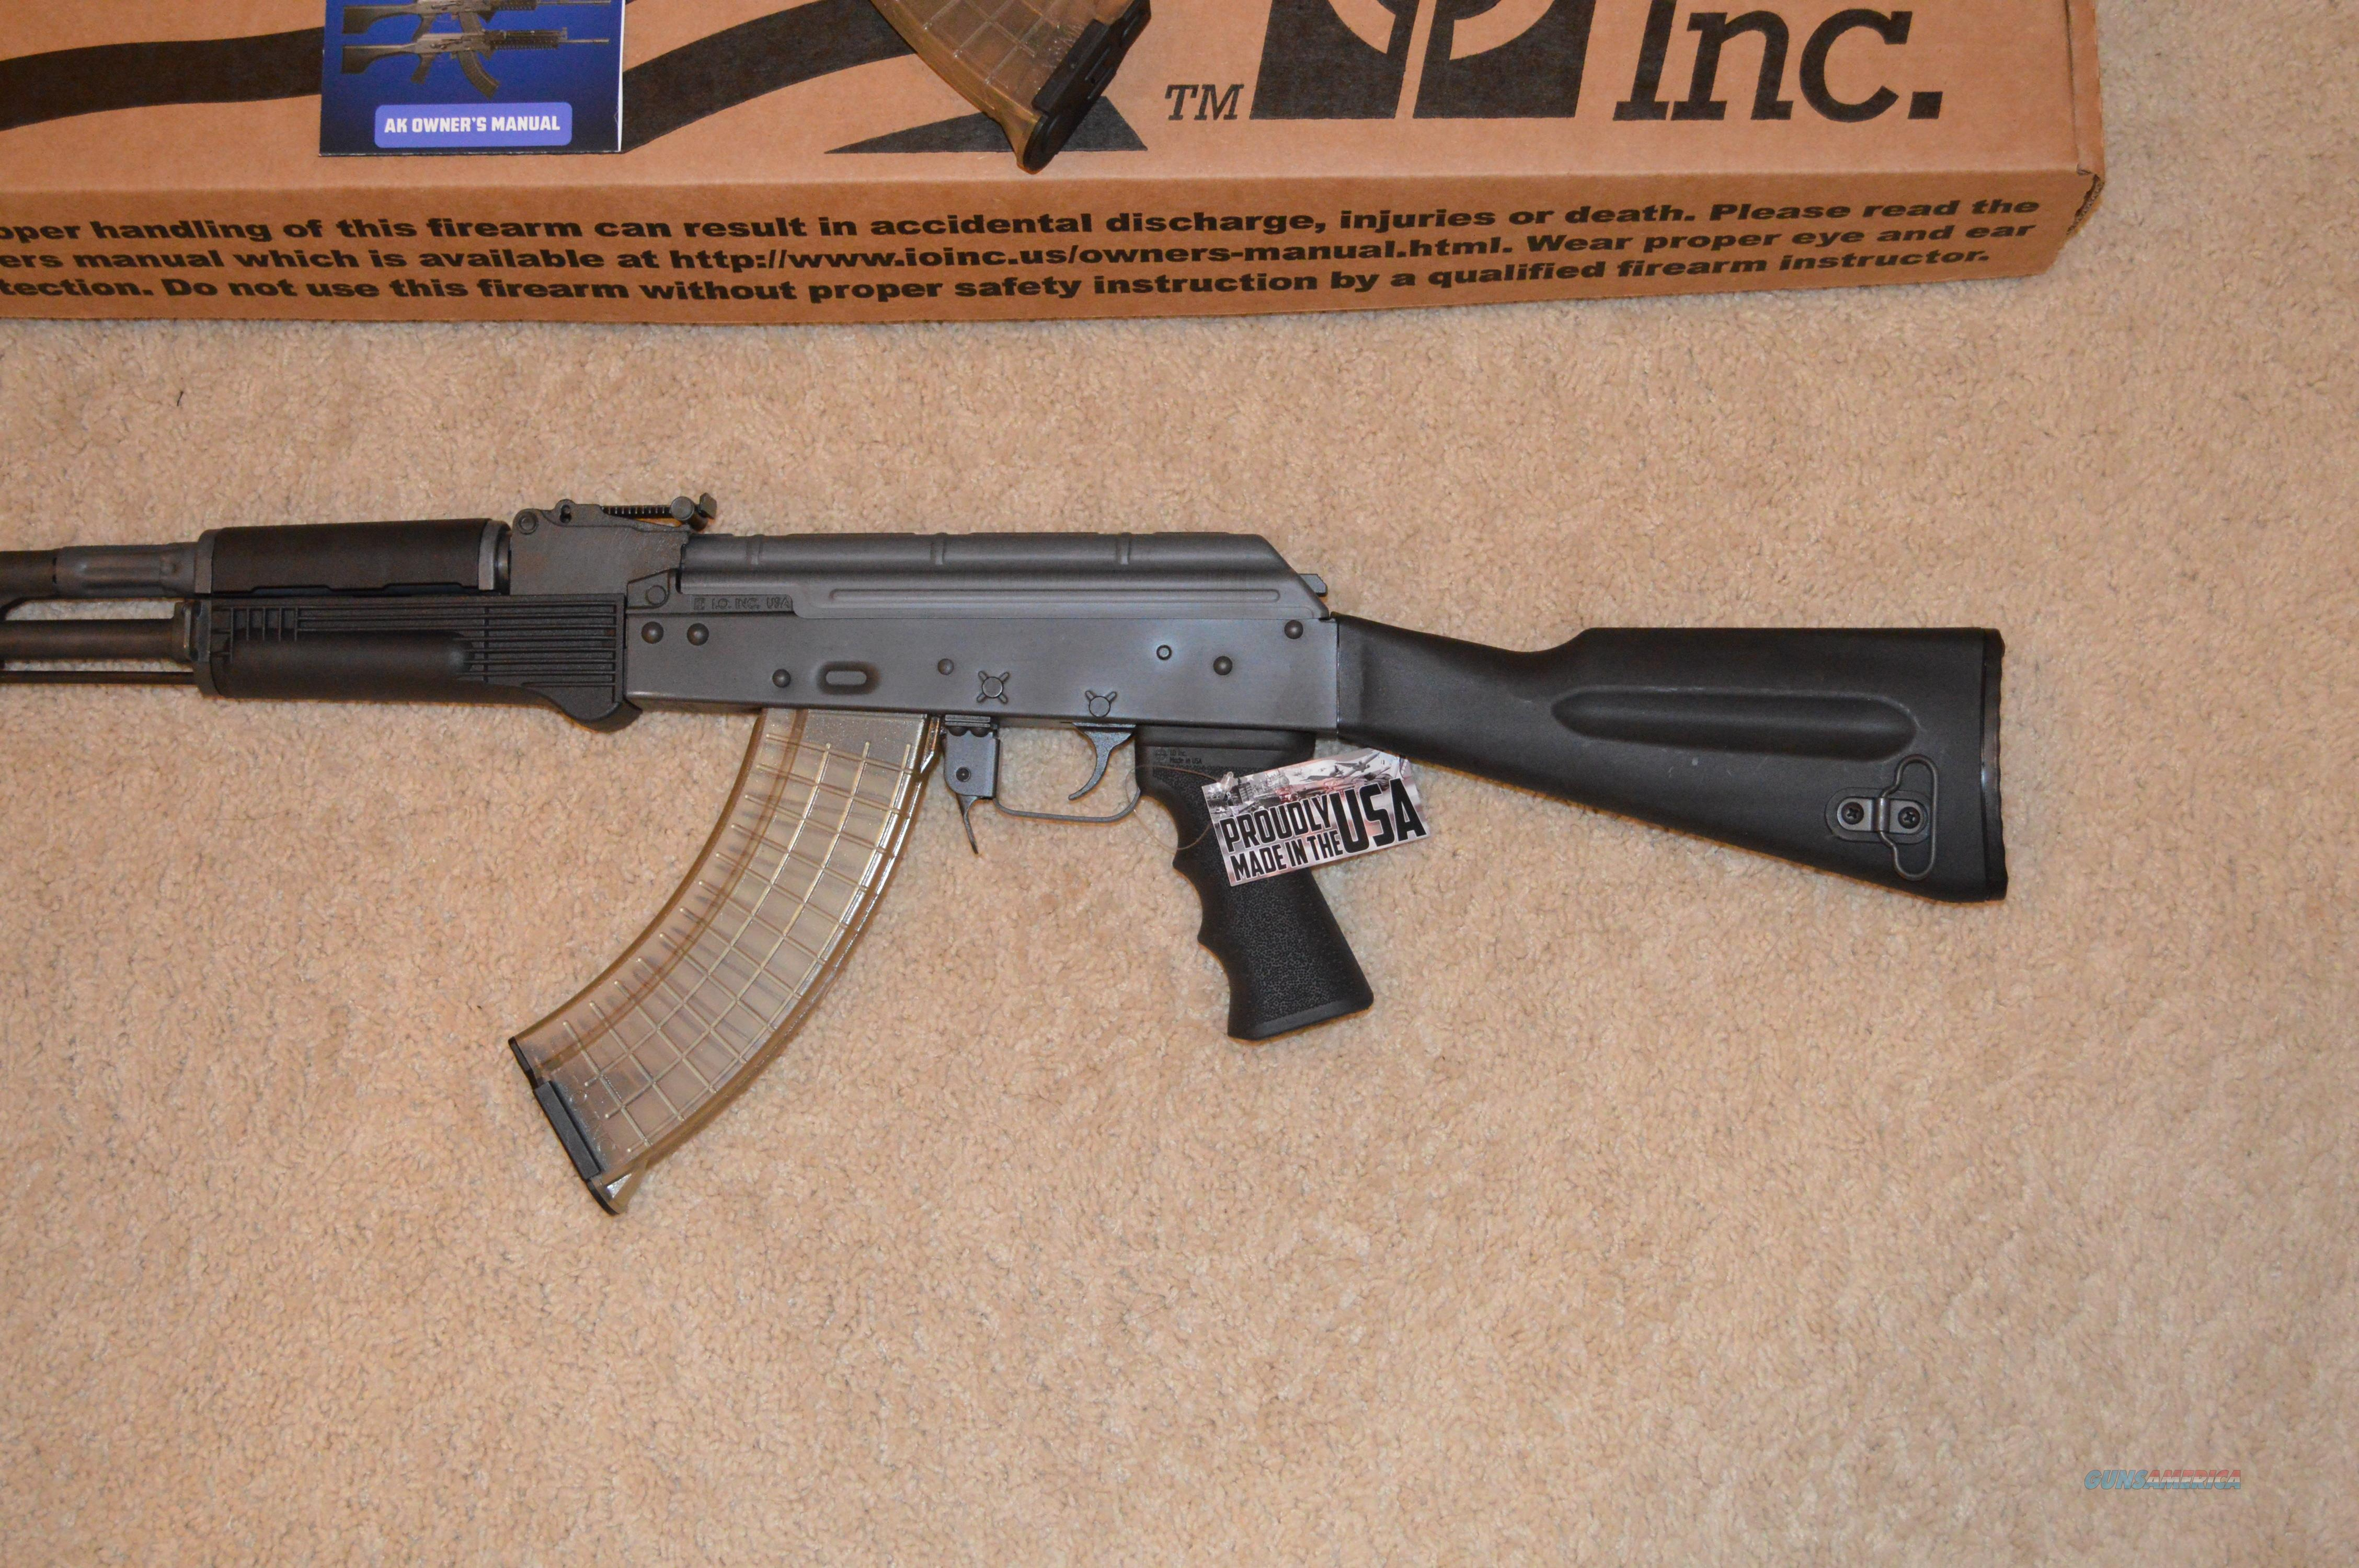 Ak ak 47 for sale by owner - 11611146 Jpg